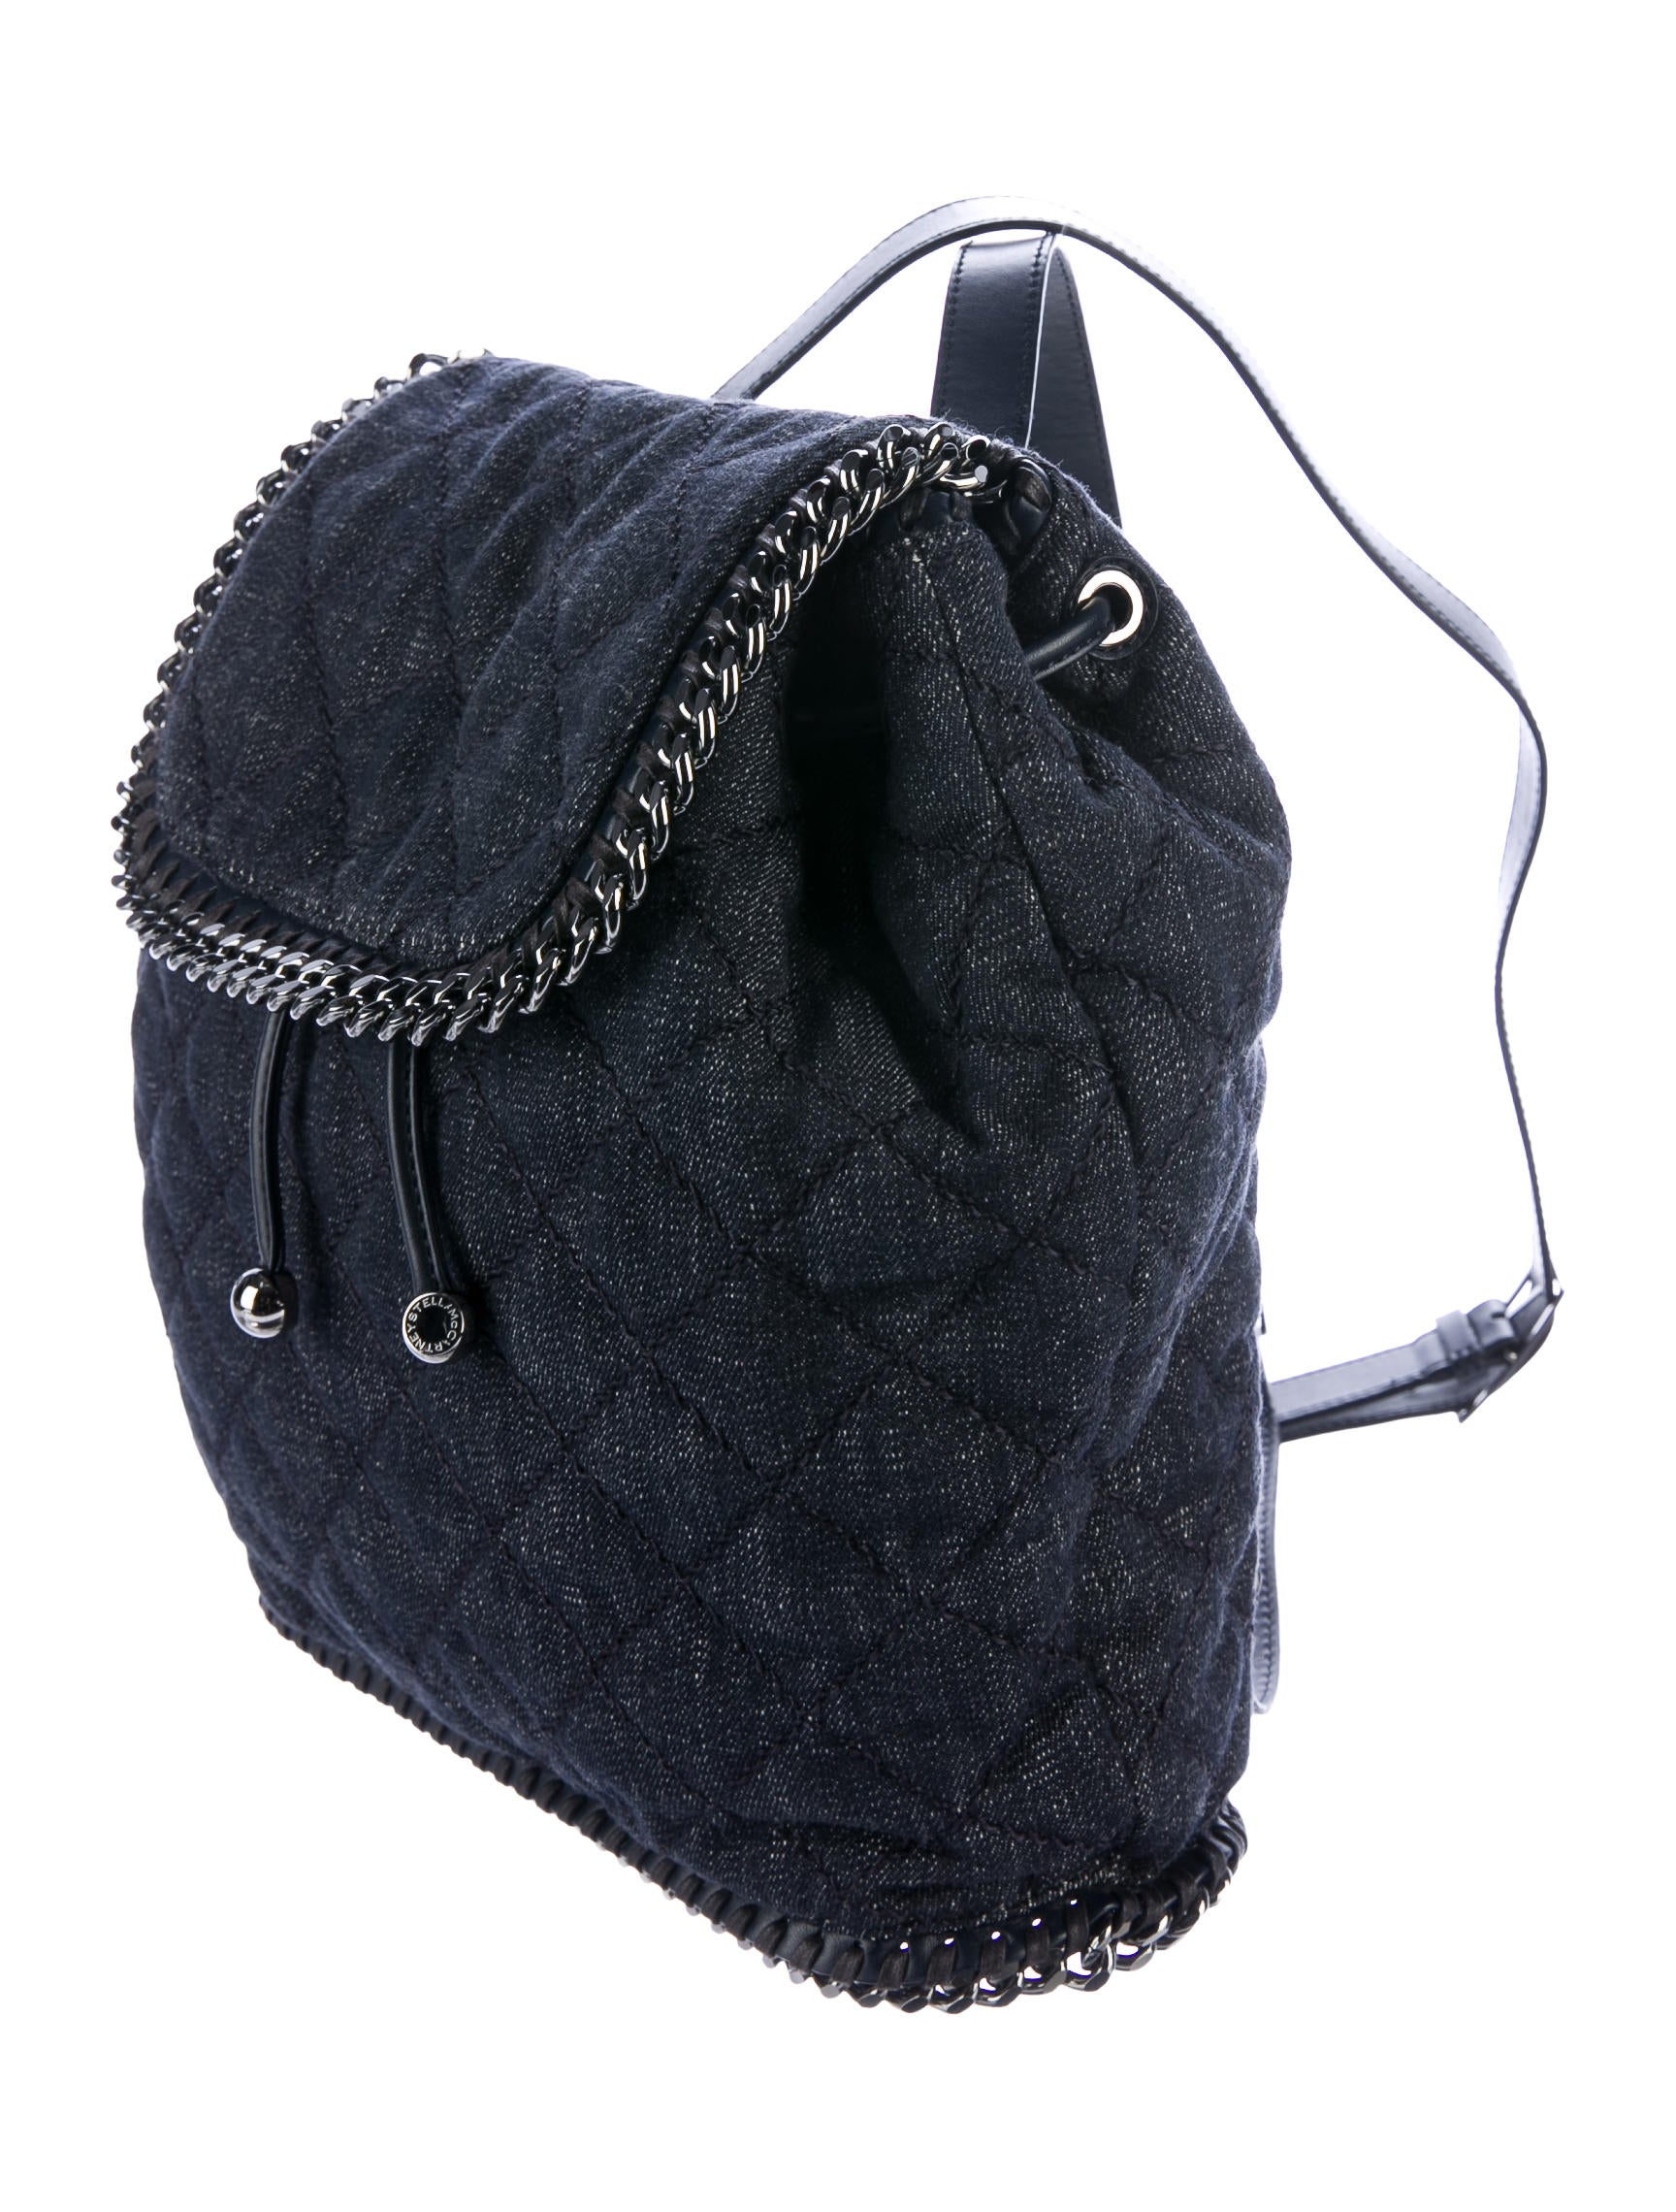 stella mccartney denim falabella rucksack handbags stl56743 the realreal. Black Bedroom Furniture Sets. Home Design Ideas